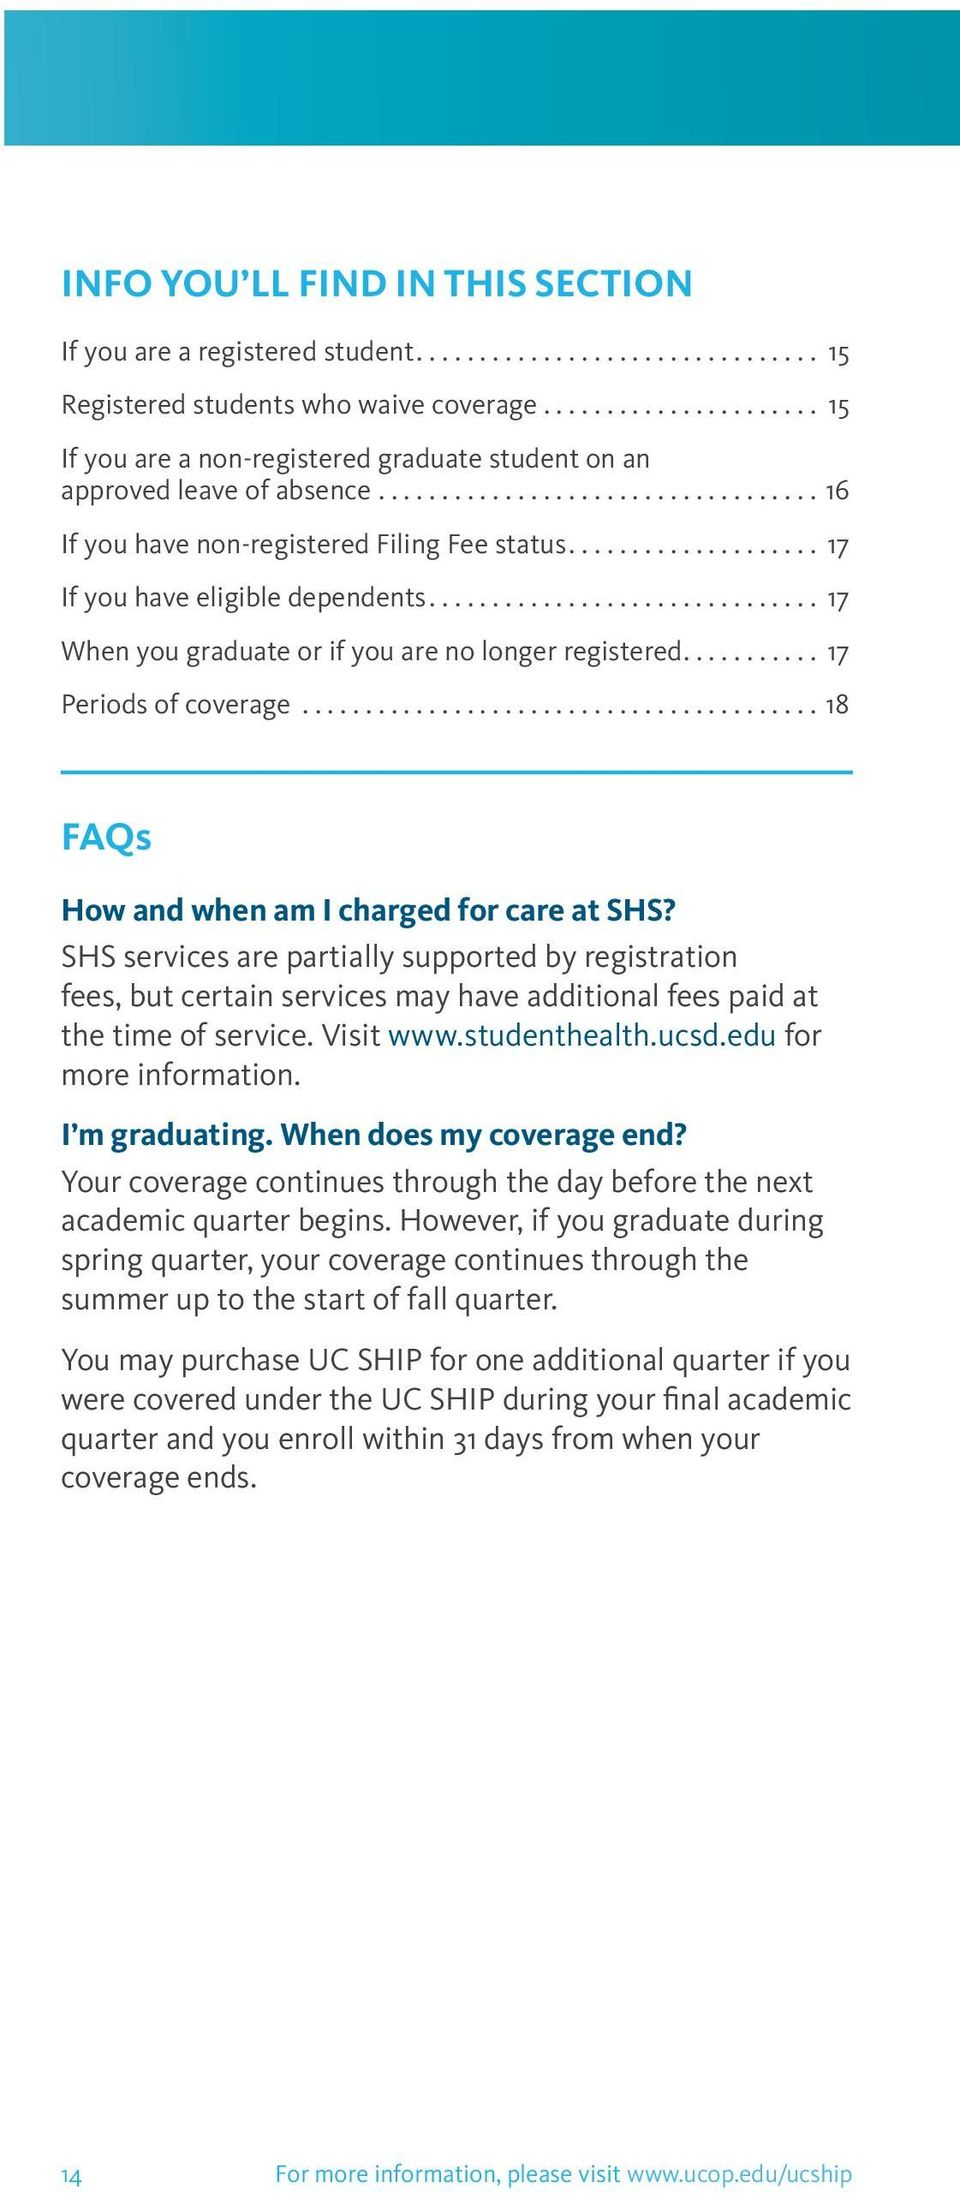 ..18 FAQs How and when am I charged for care at SHS? SHS services are partially supported by registration fees, but certain services may have additional fees paid at the time of service. Visit www.